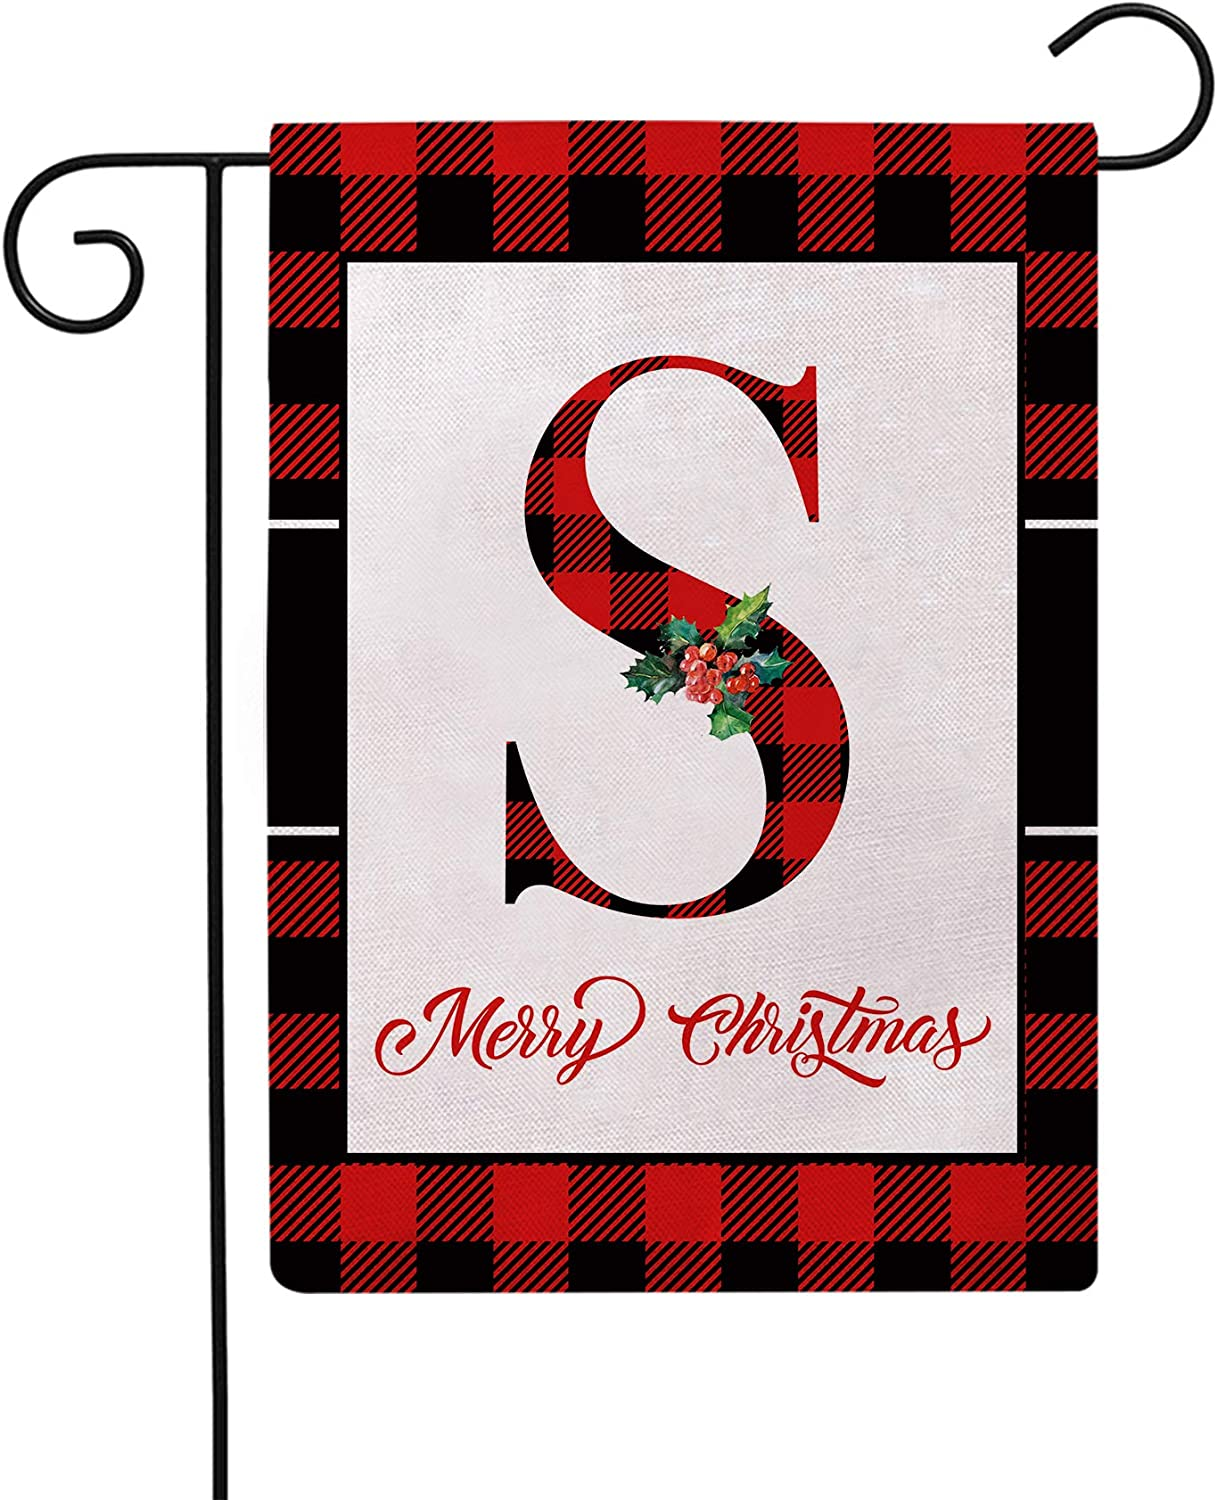 Christmas Plaid Decorative Garden Flags with Monogram Letter S Double Sided Farmhouse Red/Black Buffalo Plaid Winter Holiday Outdoor Garden Flags 12.5×18 Inch for House Garden Yard Patio Decor (S)